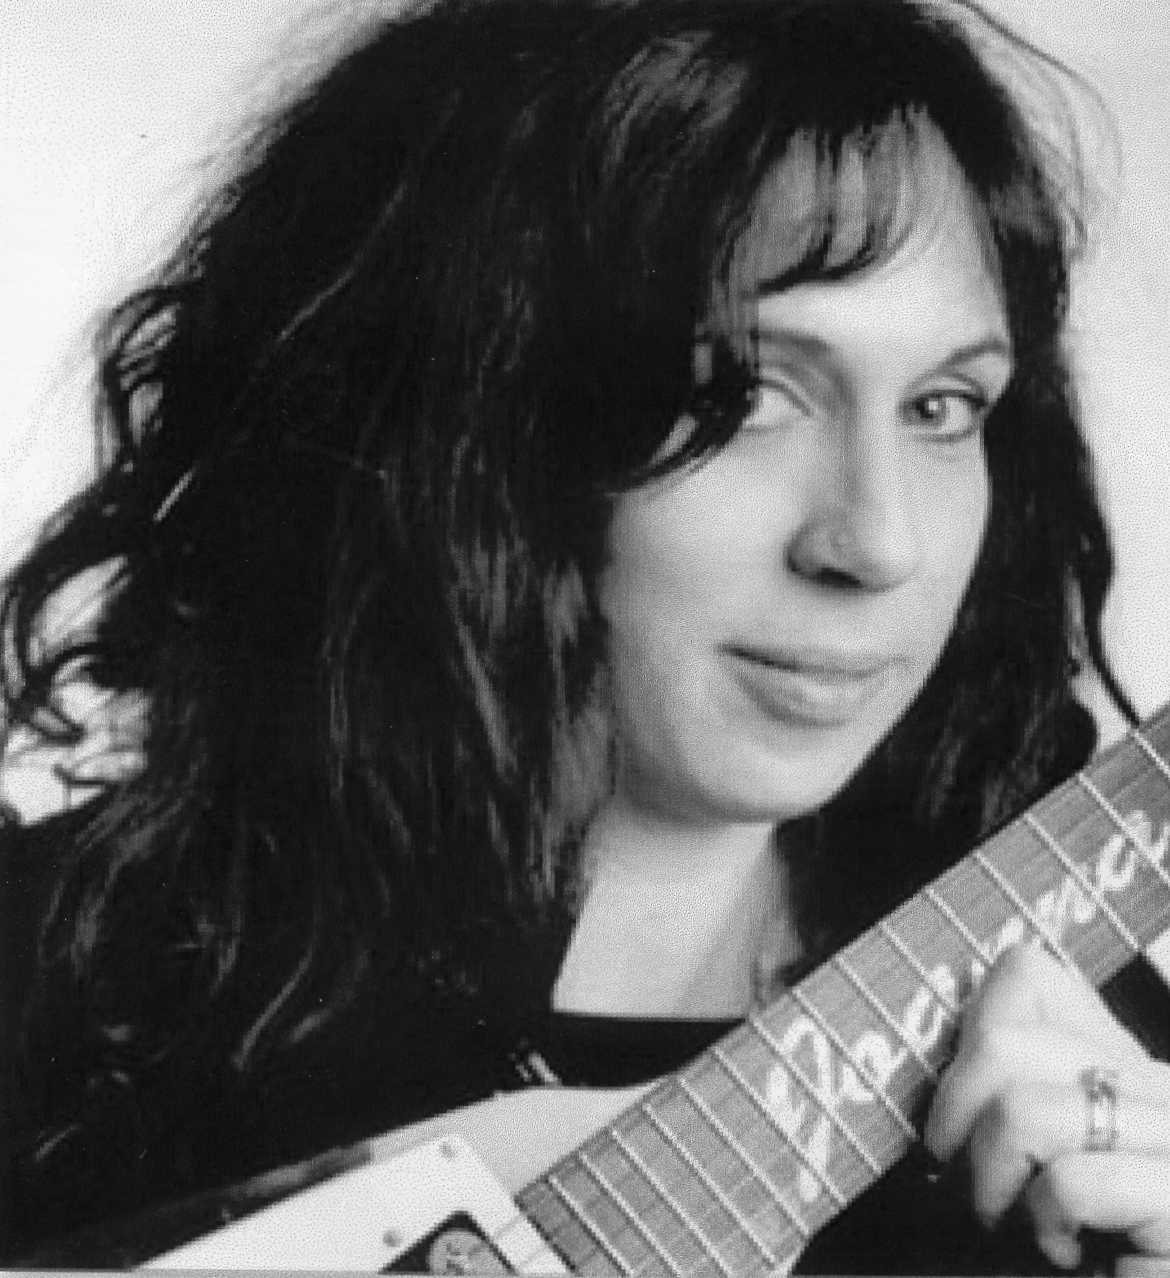 Guitarist, singer, songwriter    Joanna was born in Brooklyn,. After moving to Chicago, Illinois in 1984, she was drawn to the Chicago blues scene, and has become a guitar virtuoso. Eventually sharing the stage with the likes of James Cotton, Junior Wells, Buddy Guy, and A.C. Reed.